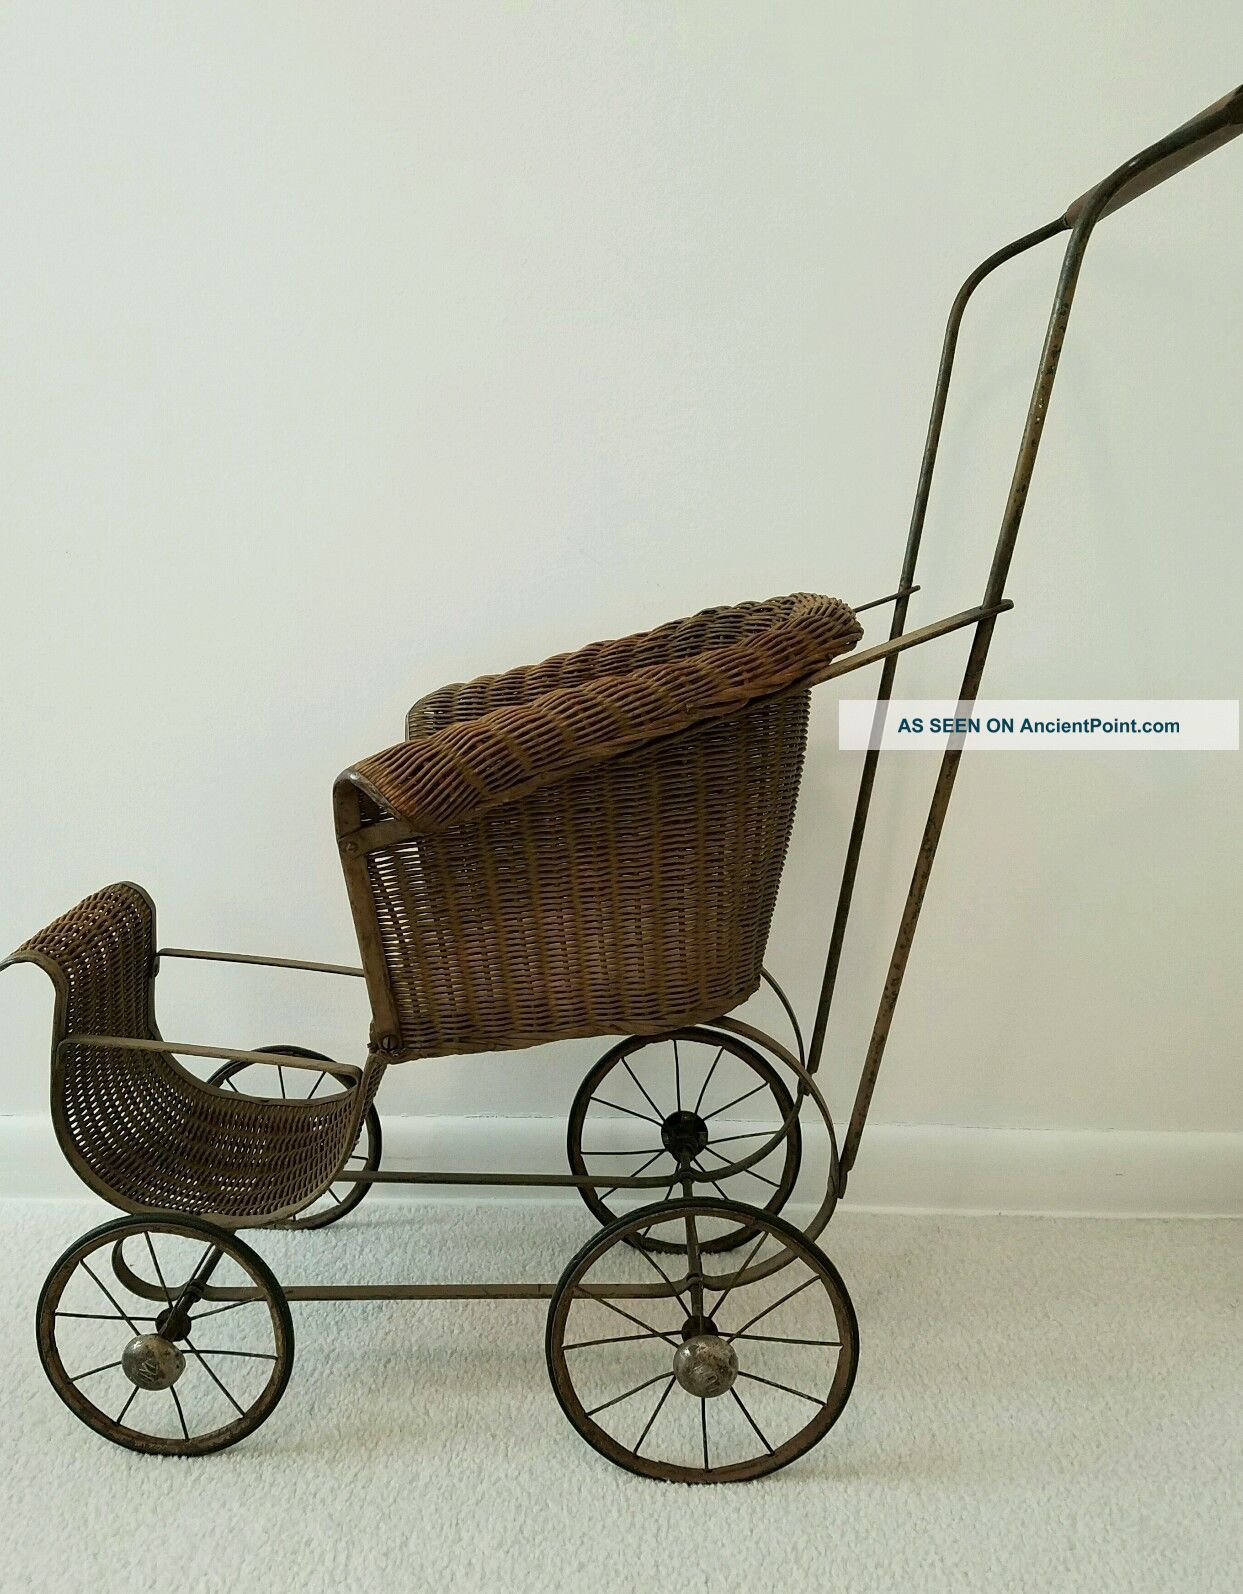 Vintage Wicker Baby Doll Carriage Baby Carriages & Buggies photo